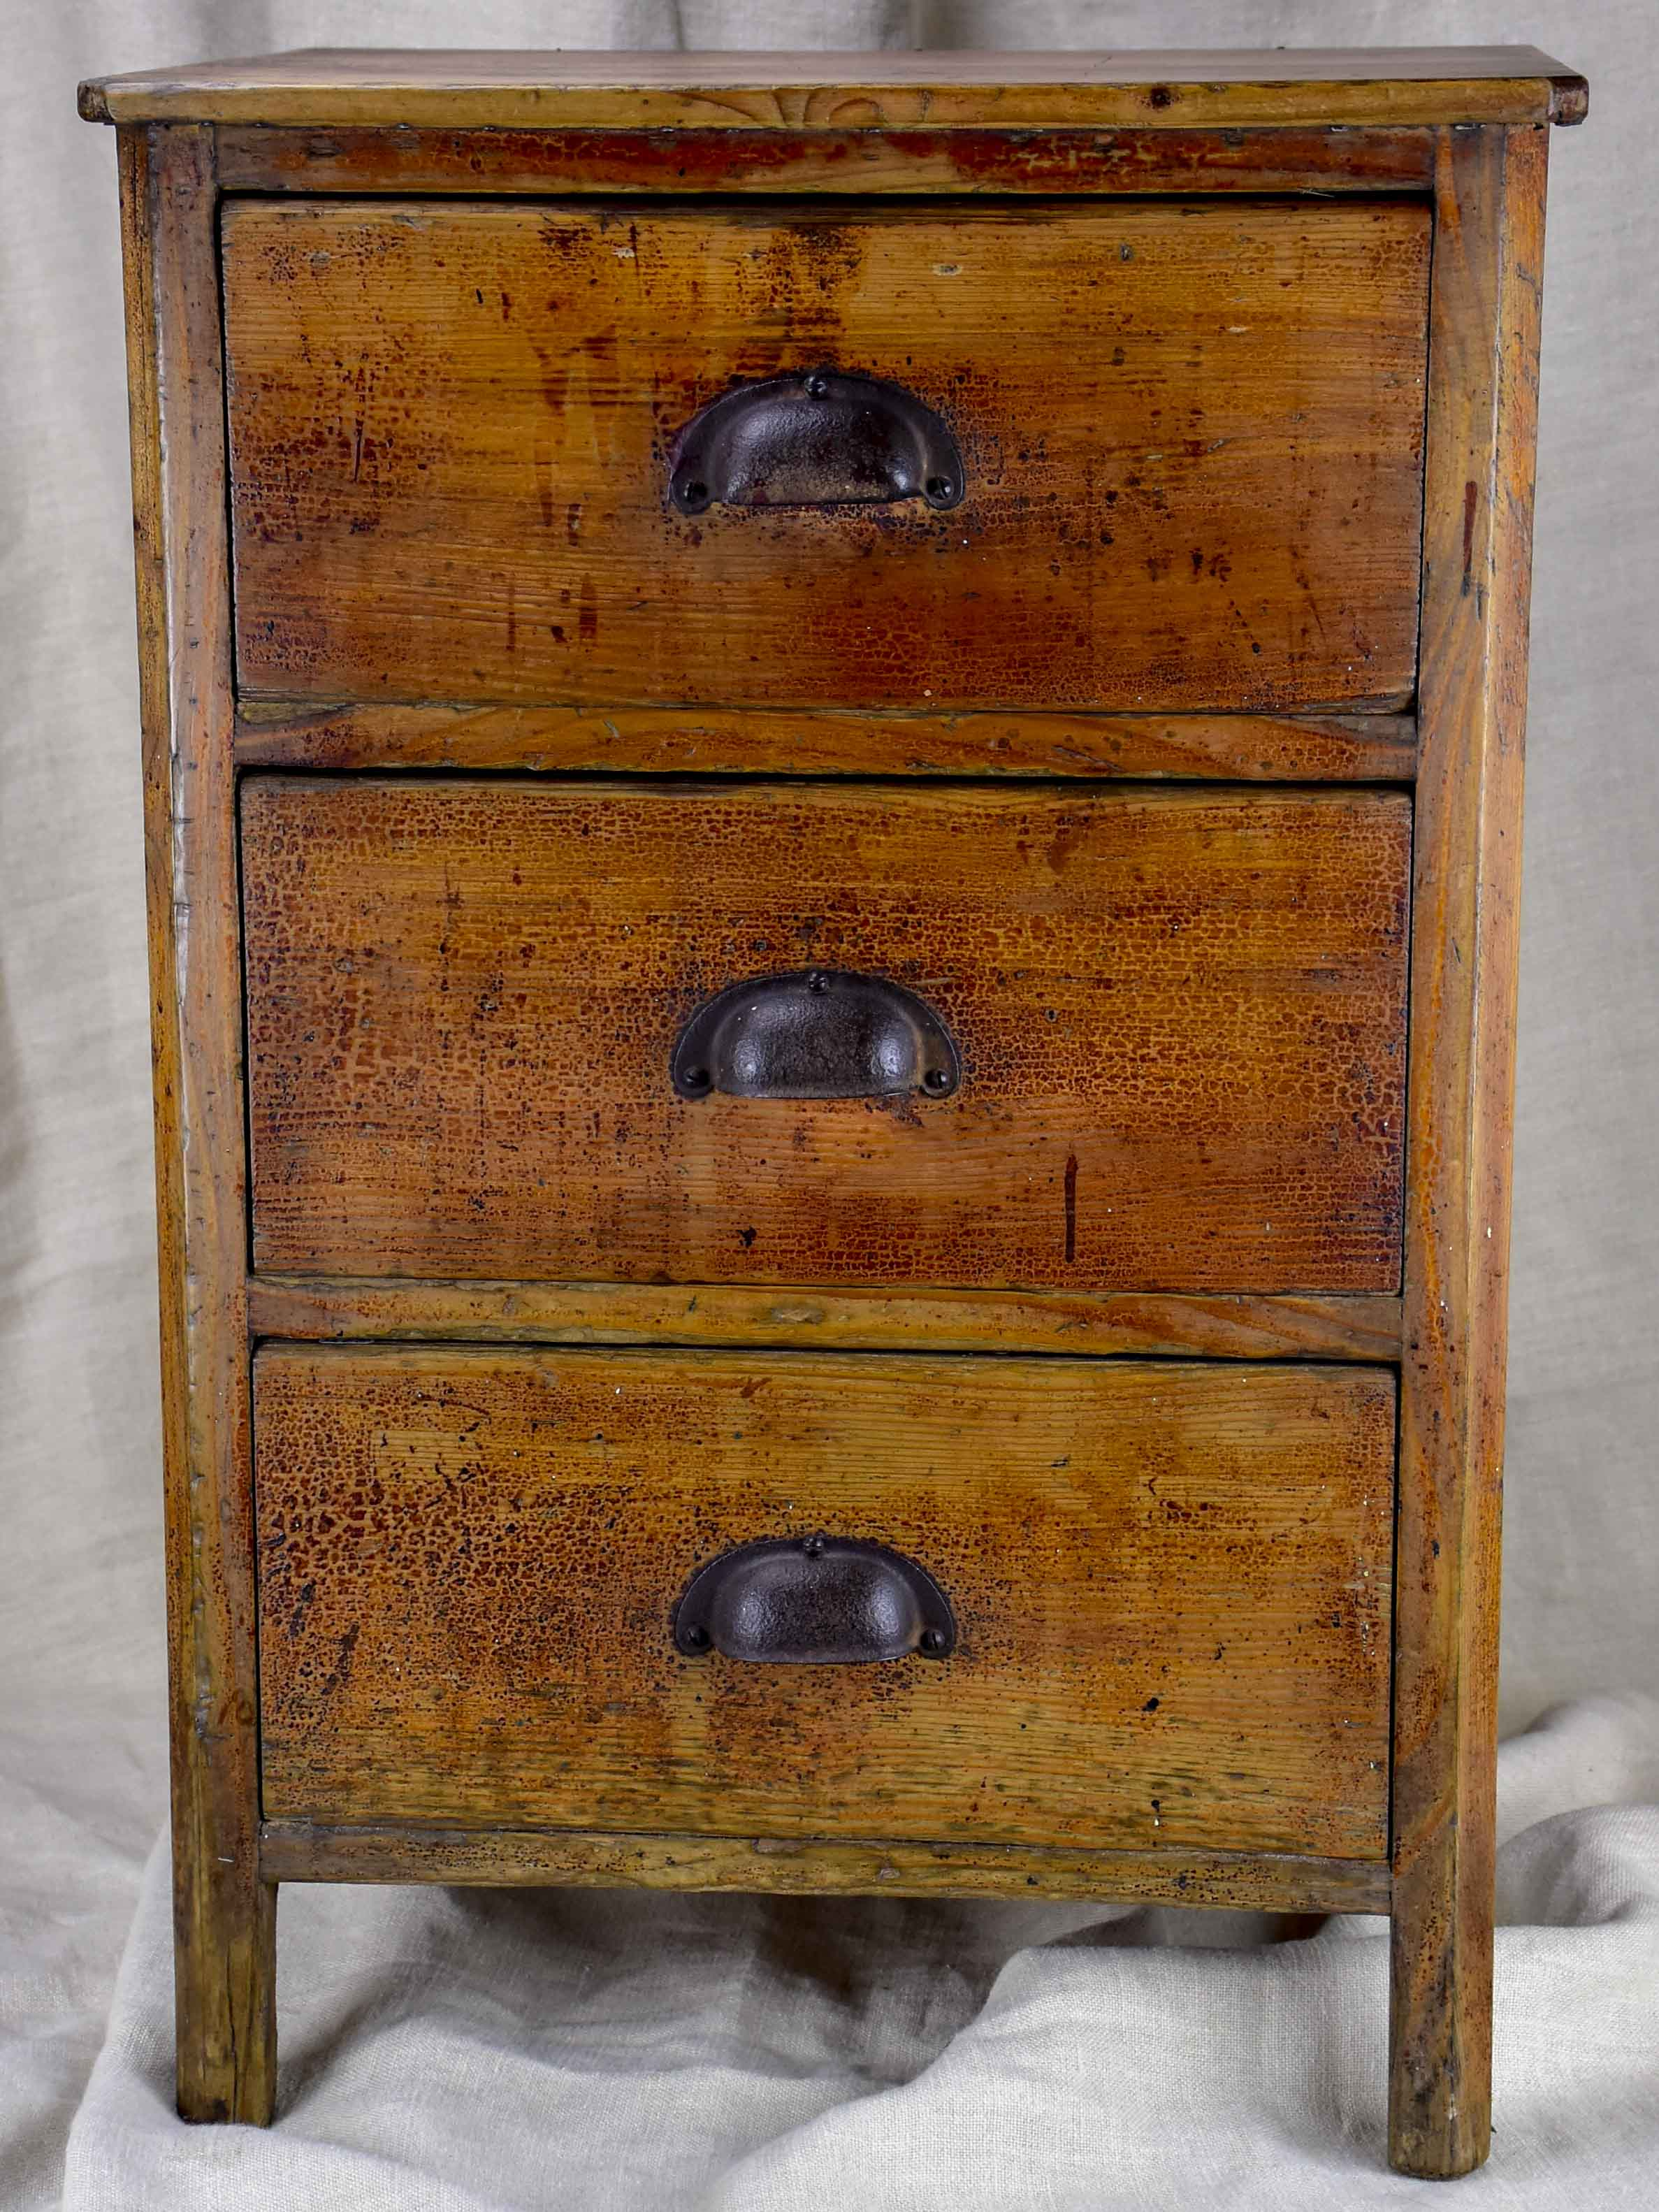 Rustic antique French nightstand